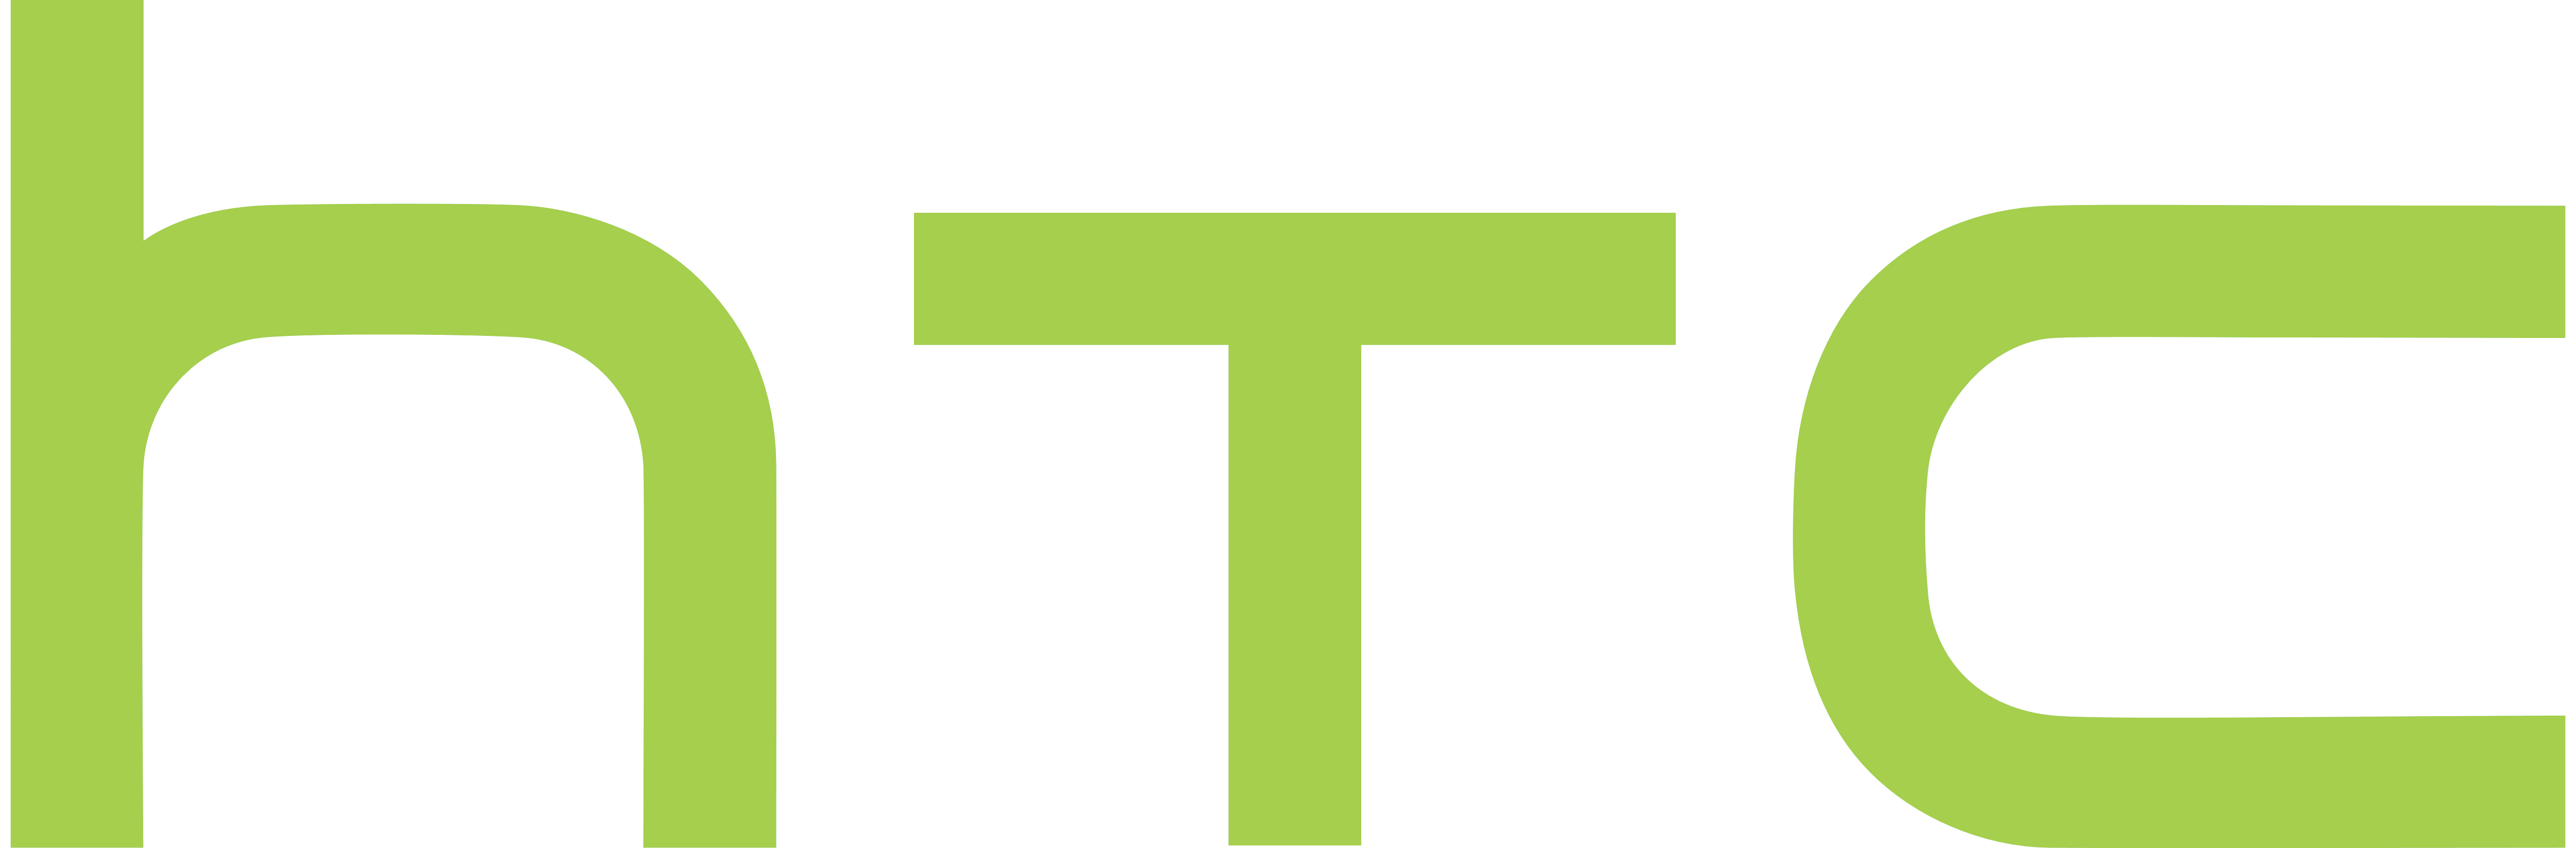 Htc logo hd